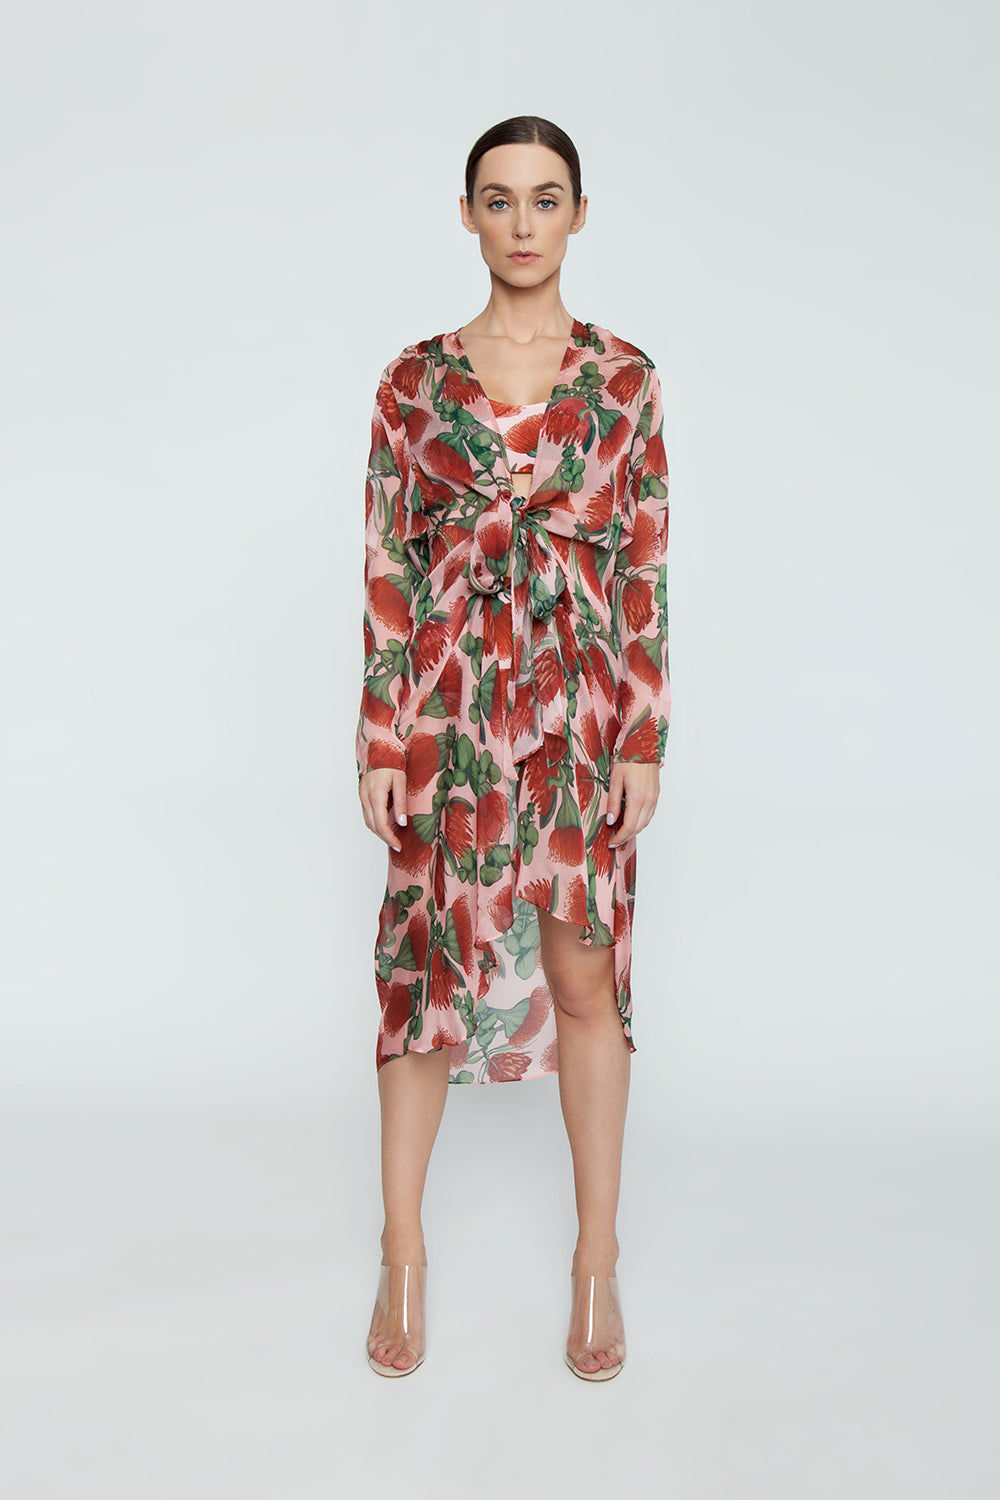 ADRIANA DEGREAS Silk Muslin Long Robe Cover-Up - Fiore Rose Print Cover Up | Fiore Rose Print| Adriana Degreas Silk Muslin Long Robe - Fiore Rose Print Long sleeve robe  Front View